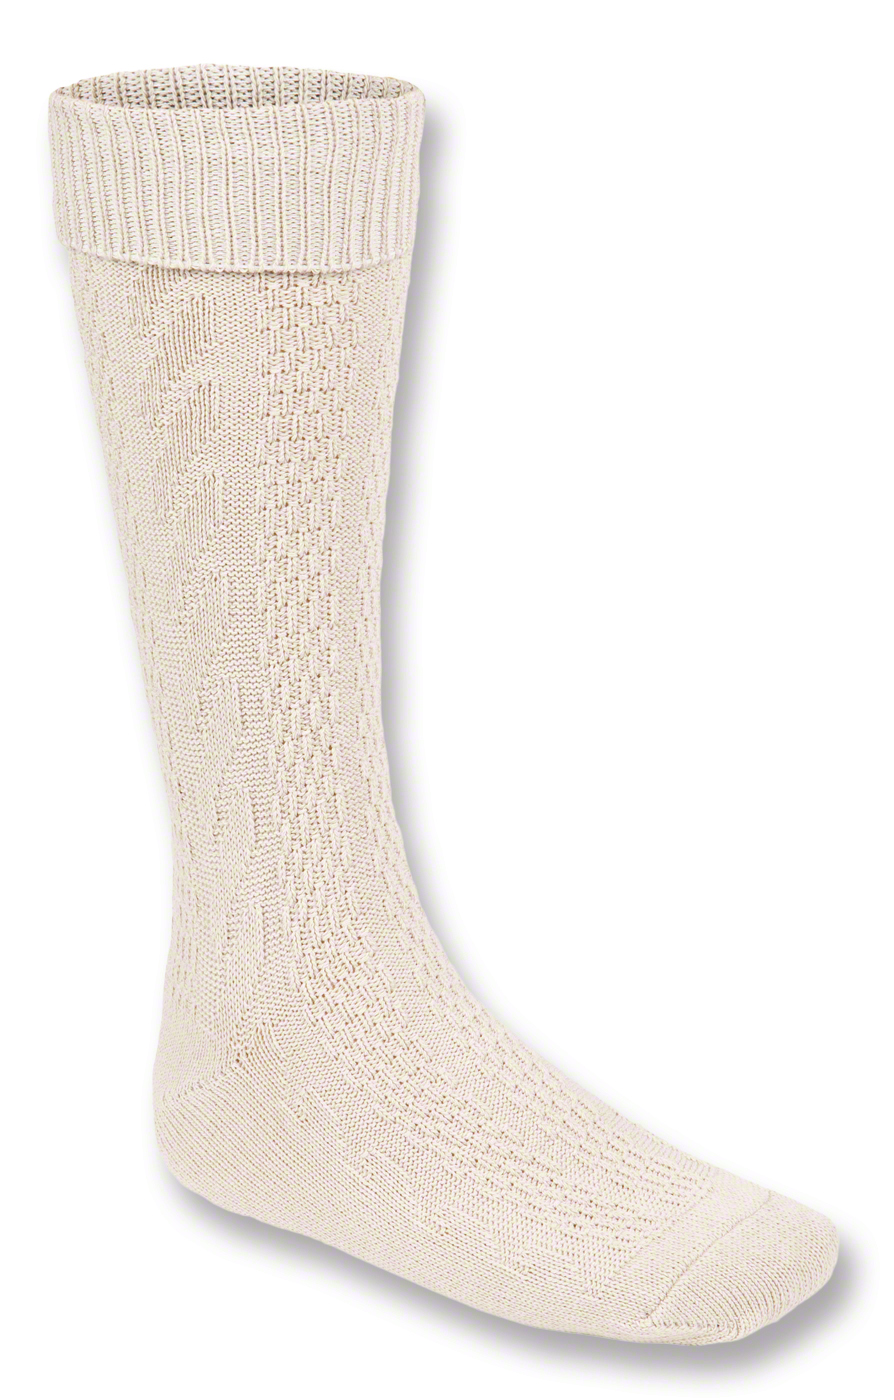 Traditional knee socks 54060D nature von Stockerpoint